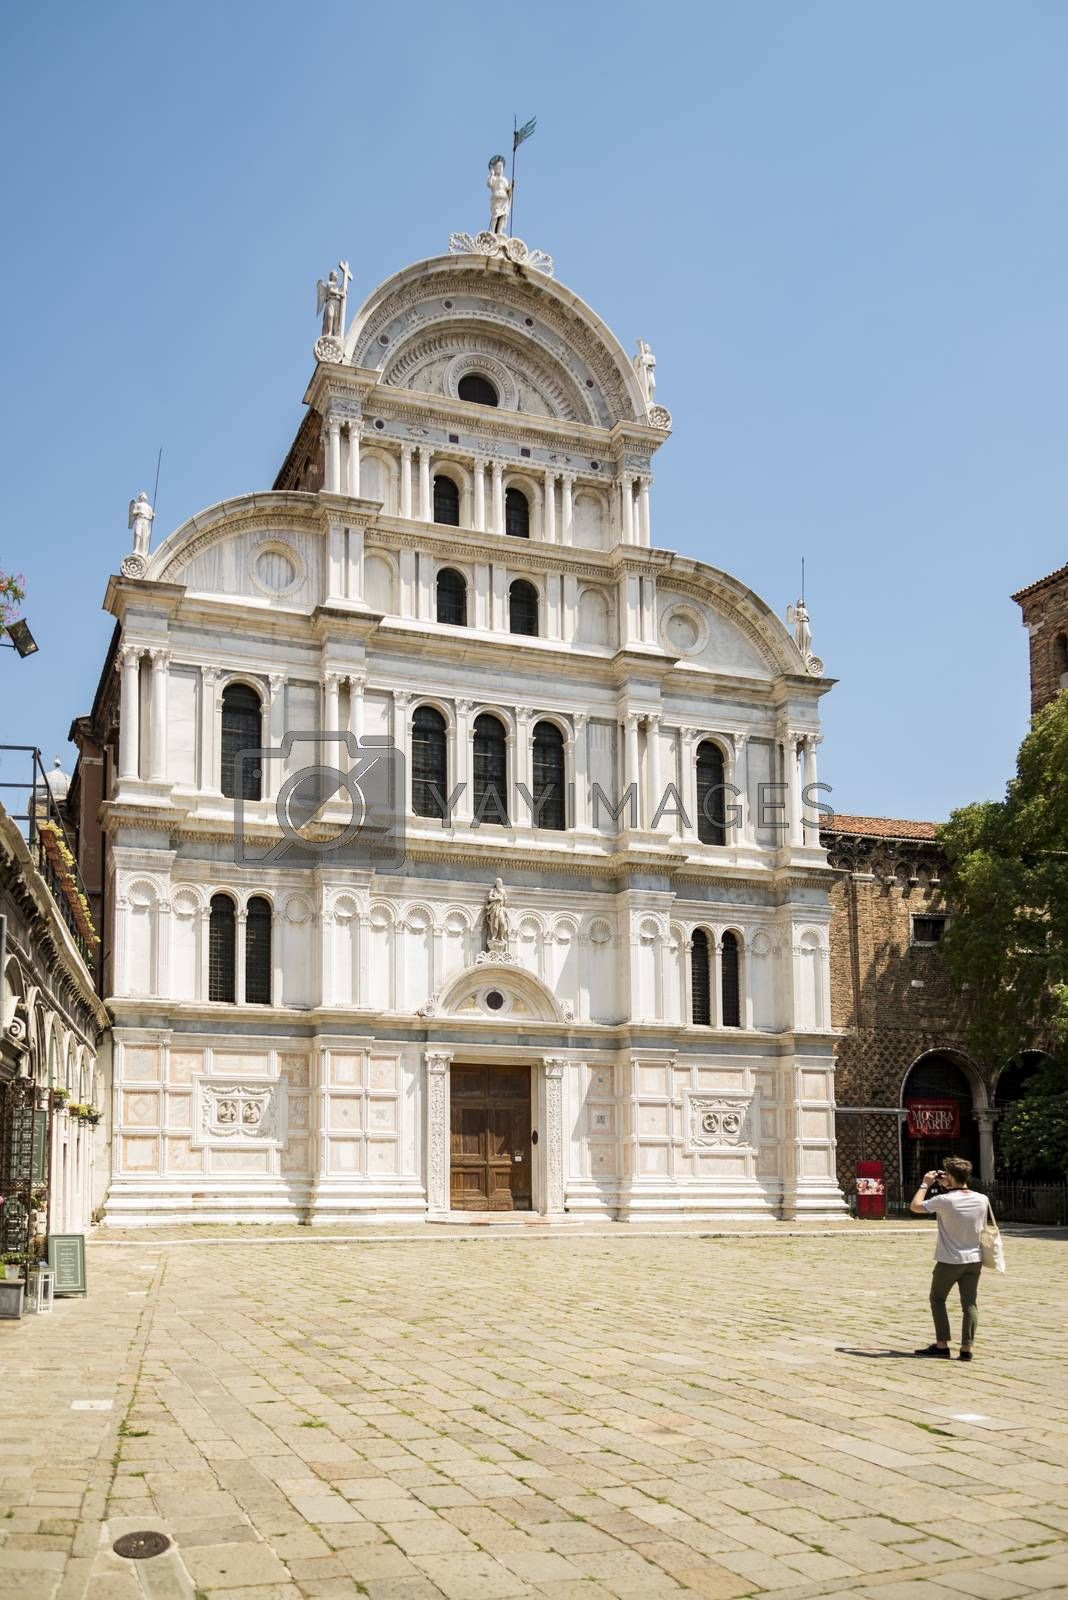 St. Zacharias church in Venice, dedicated to the father of John the Baptist, whose body it supposedly contains. Mixture of gothic and renaissance style.